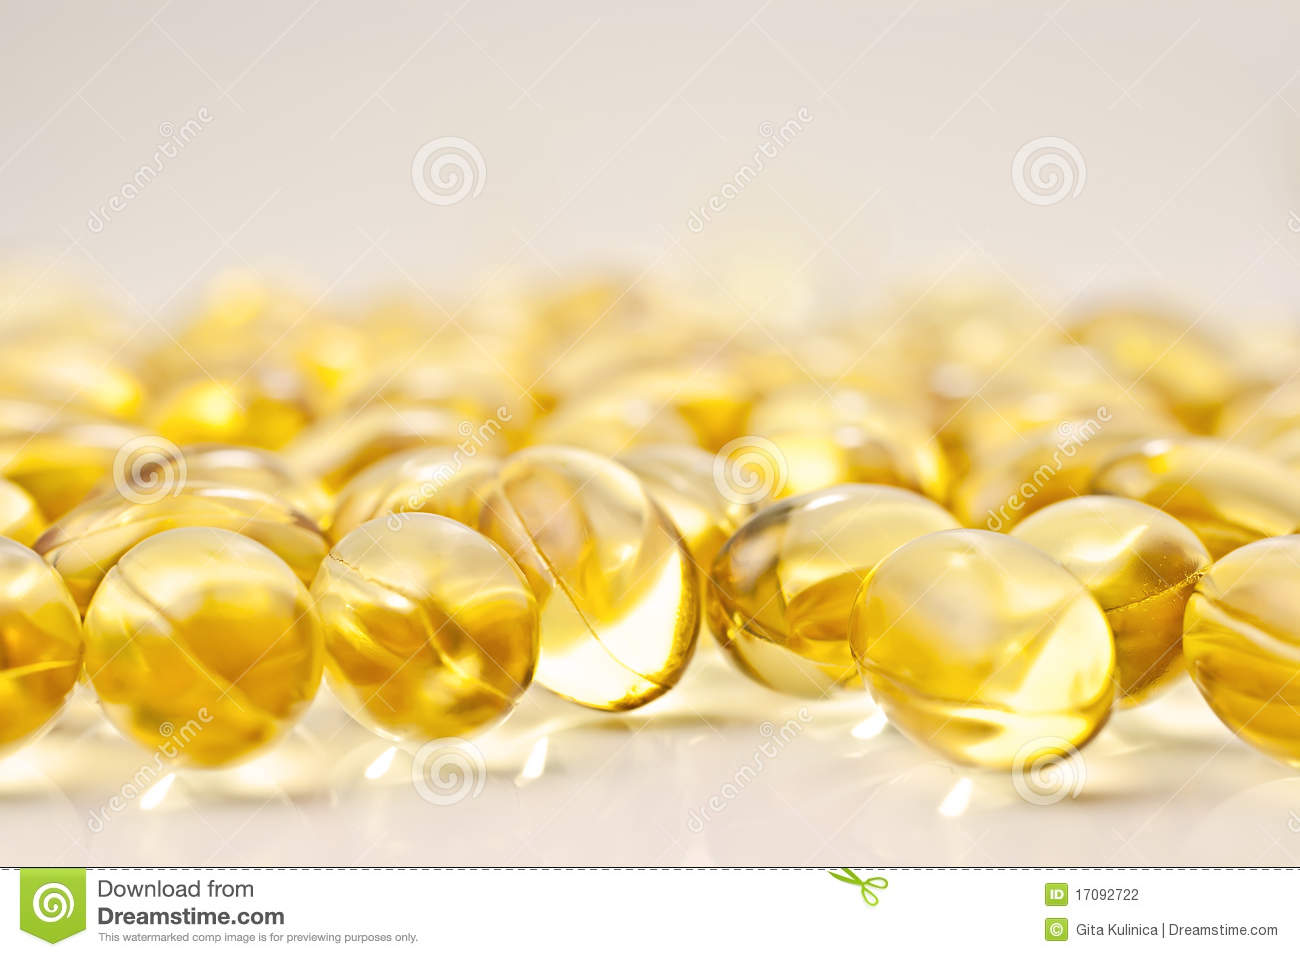 Gel vitamin supplement capsules.